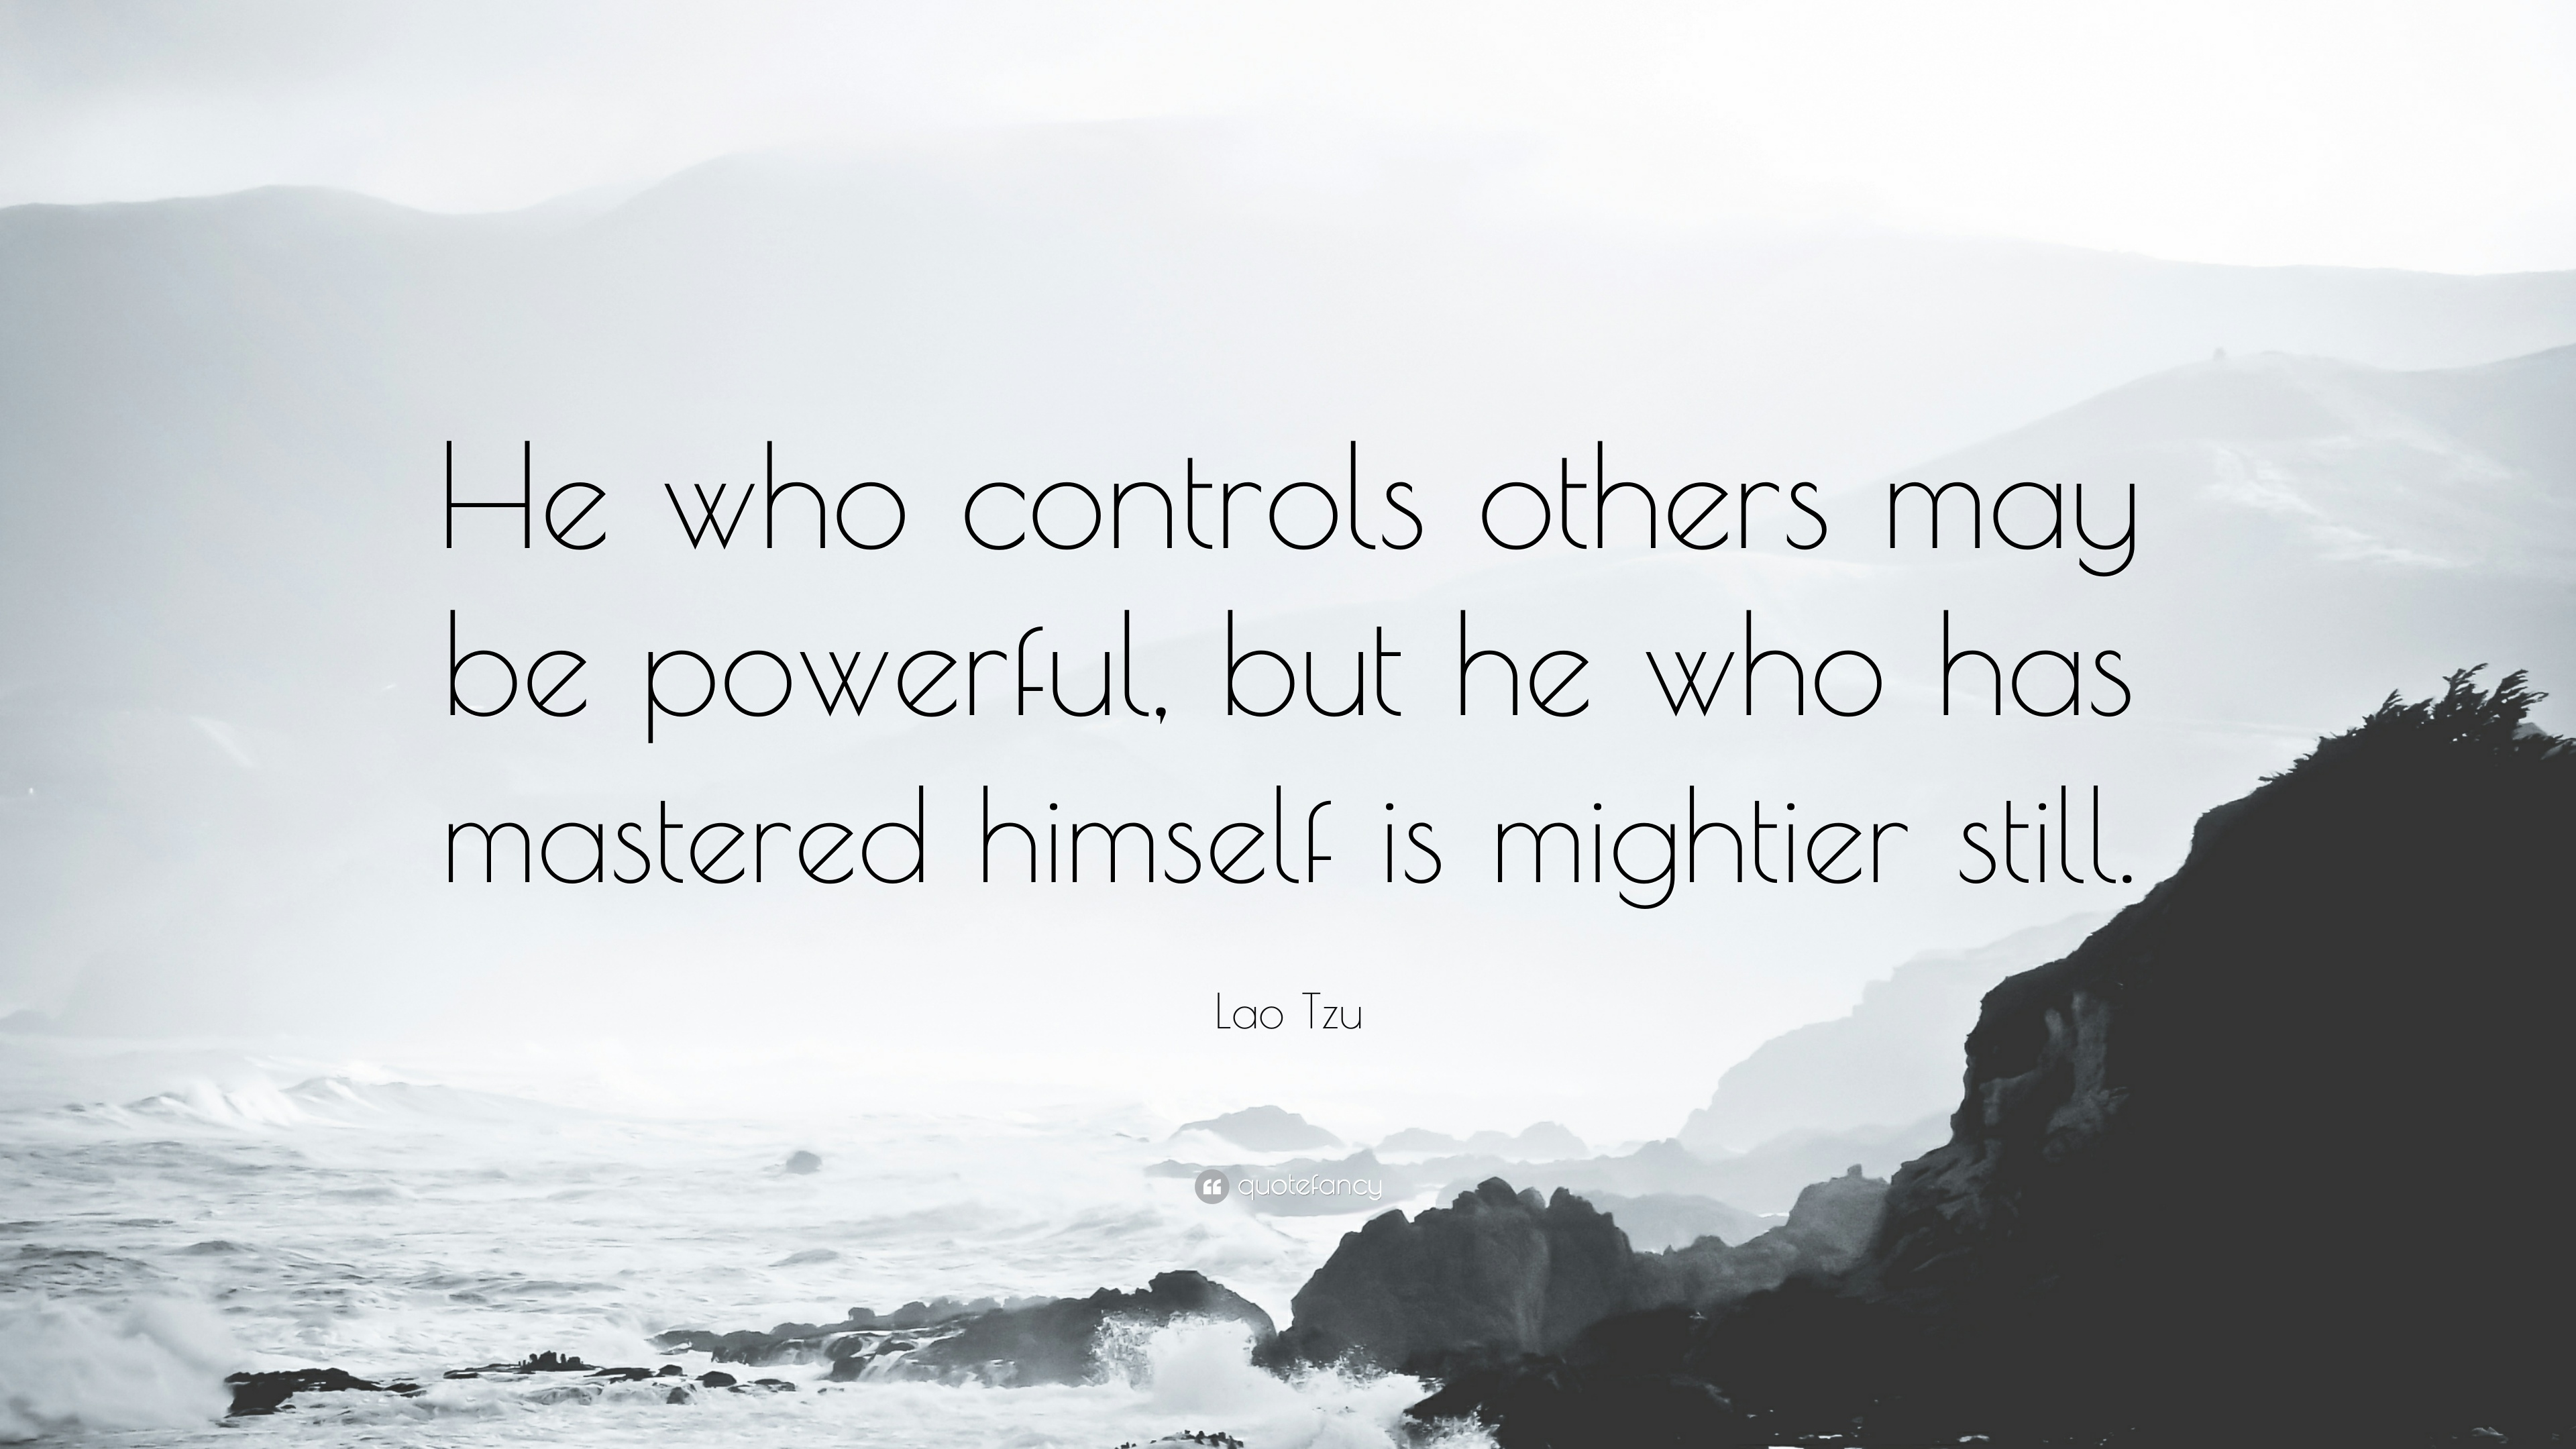 """He who controls others may be powerful, but he who has mastered himself is mightier still."" Lao Tzu [3480 x 2160]"